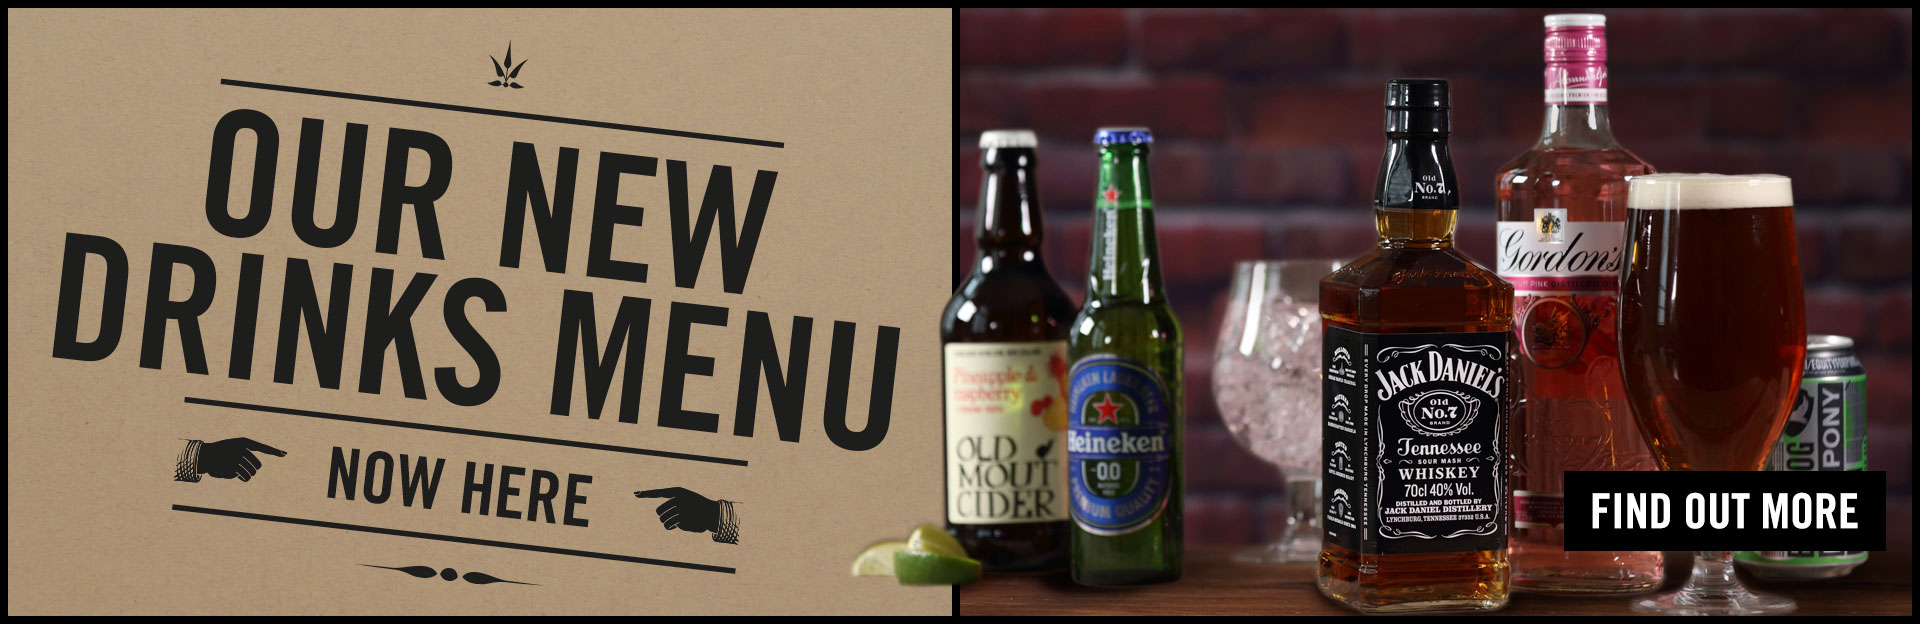 New Drinks Menu Coming Soon at The Granary